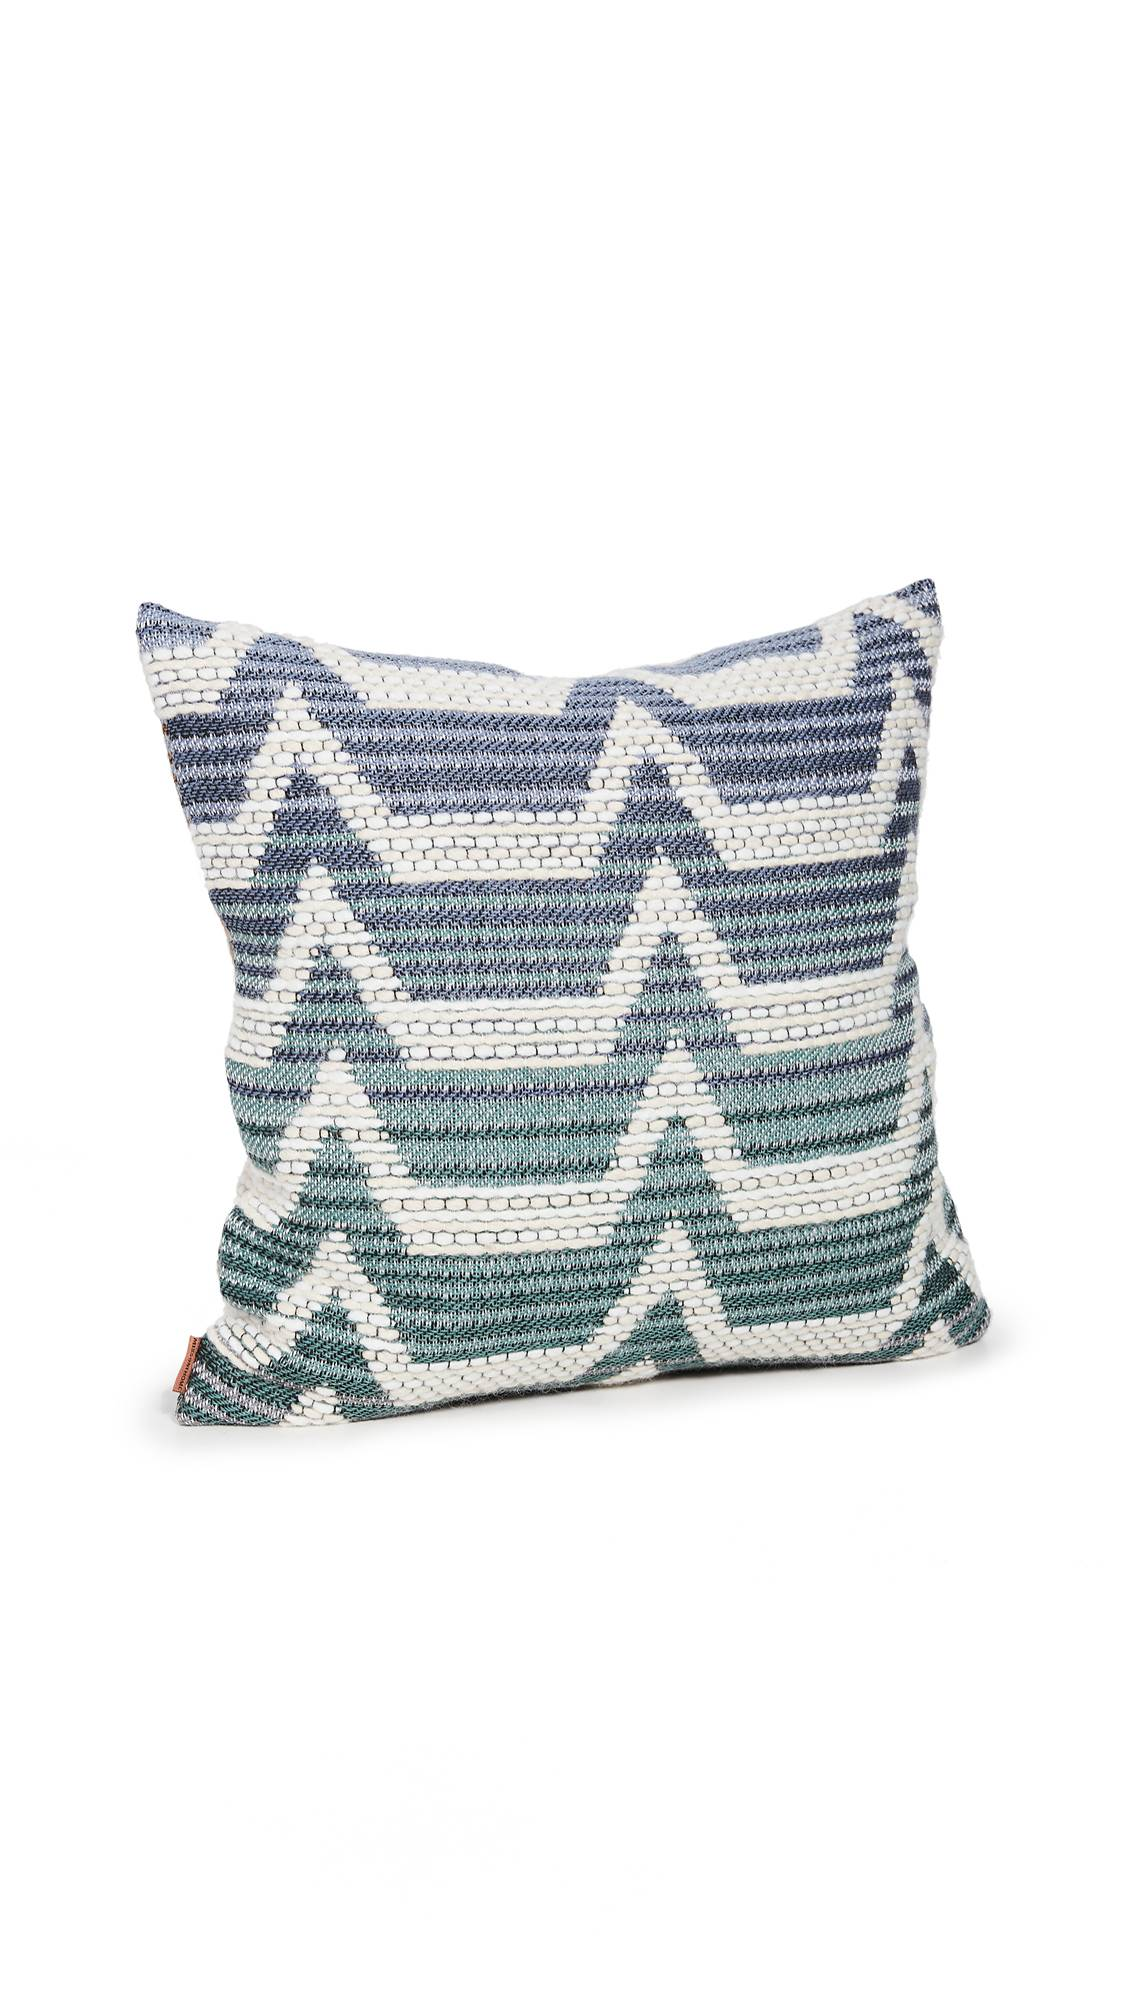 Missoni Home Socrate Cushion  - Multi - Size: One Size